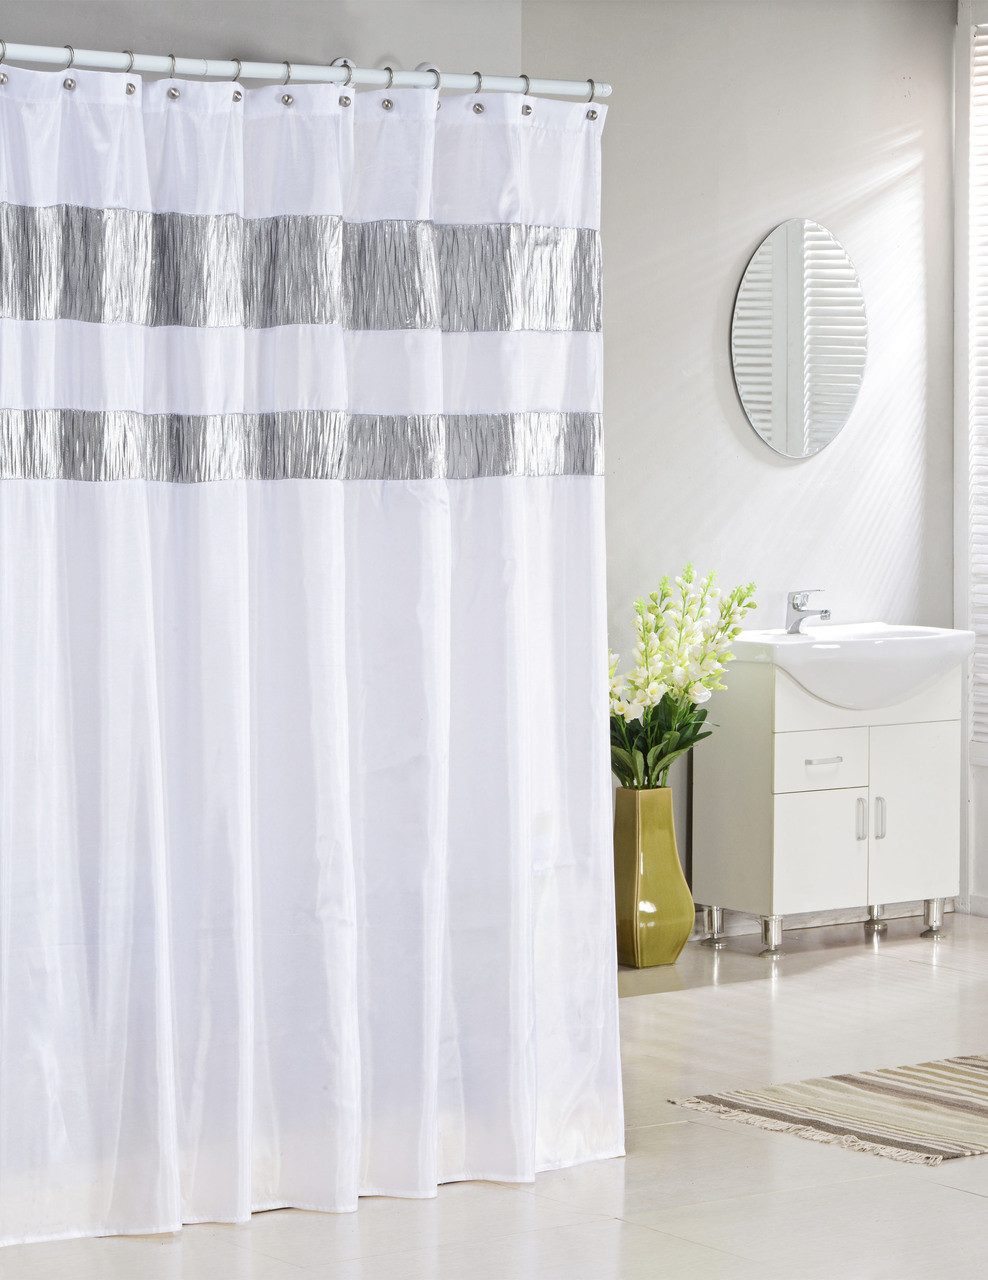 Bathroom And More Collection Extra Long Pure White Fabric Shower Curtain With Silver Metallic Accent Stripes 72 W X 96 L